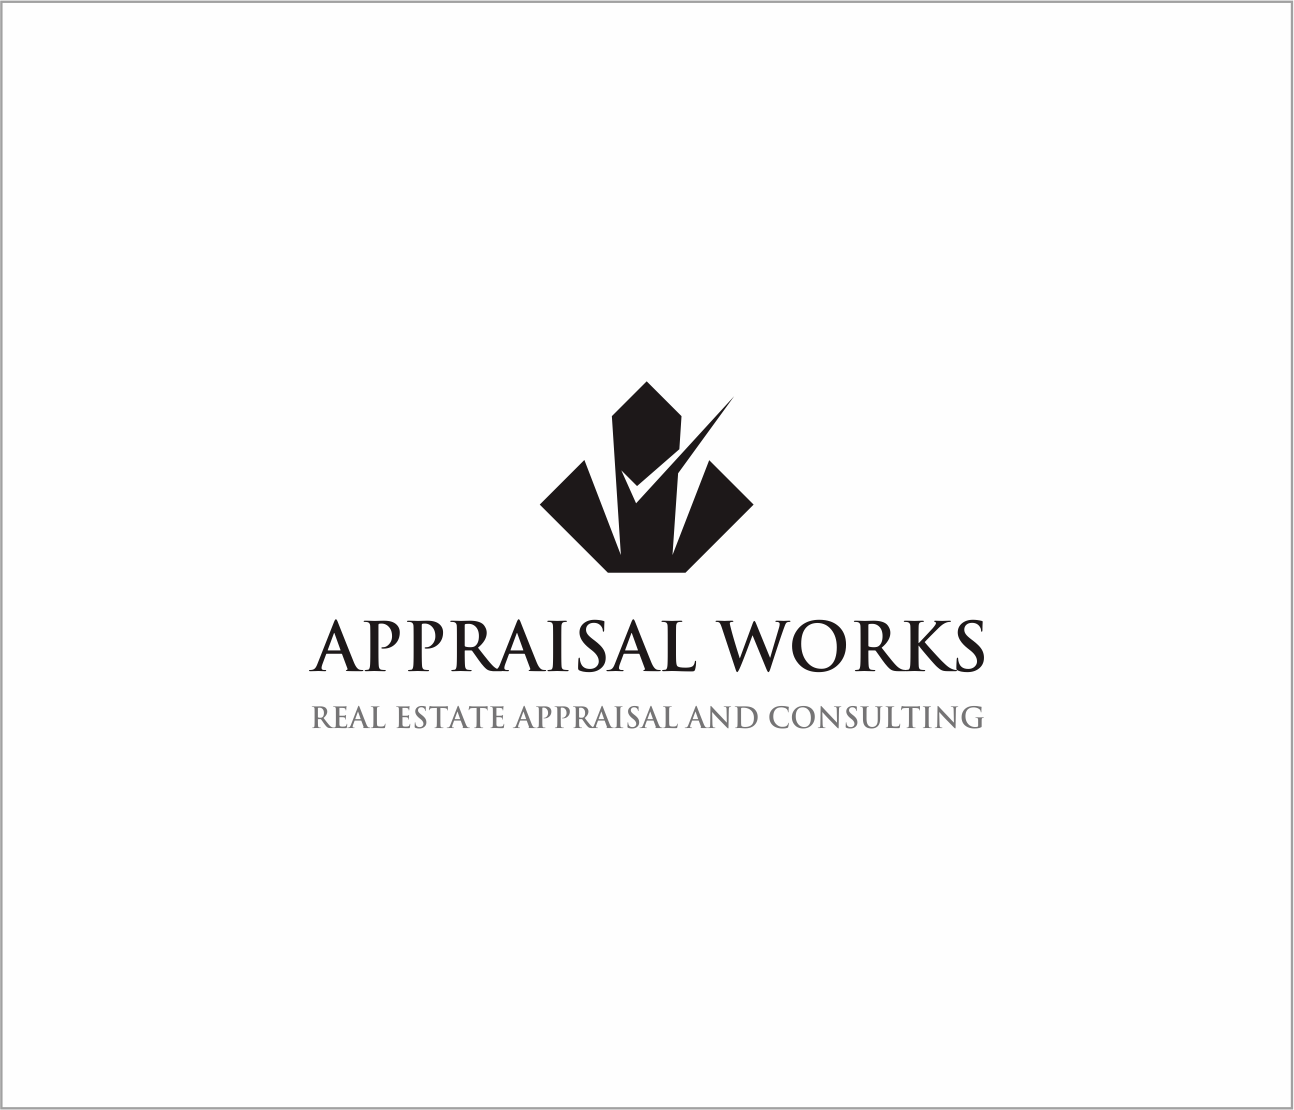 Logo Design by Armada Jamaluddin - Entry No. 236 in the Logo Design Contest Appraisal Works Logo Design.